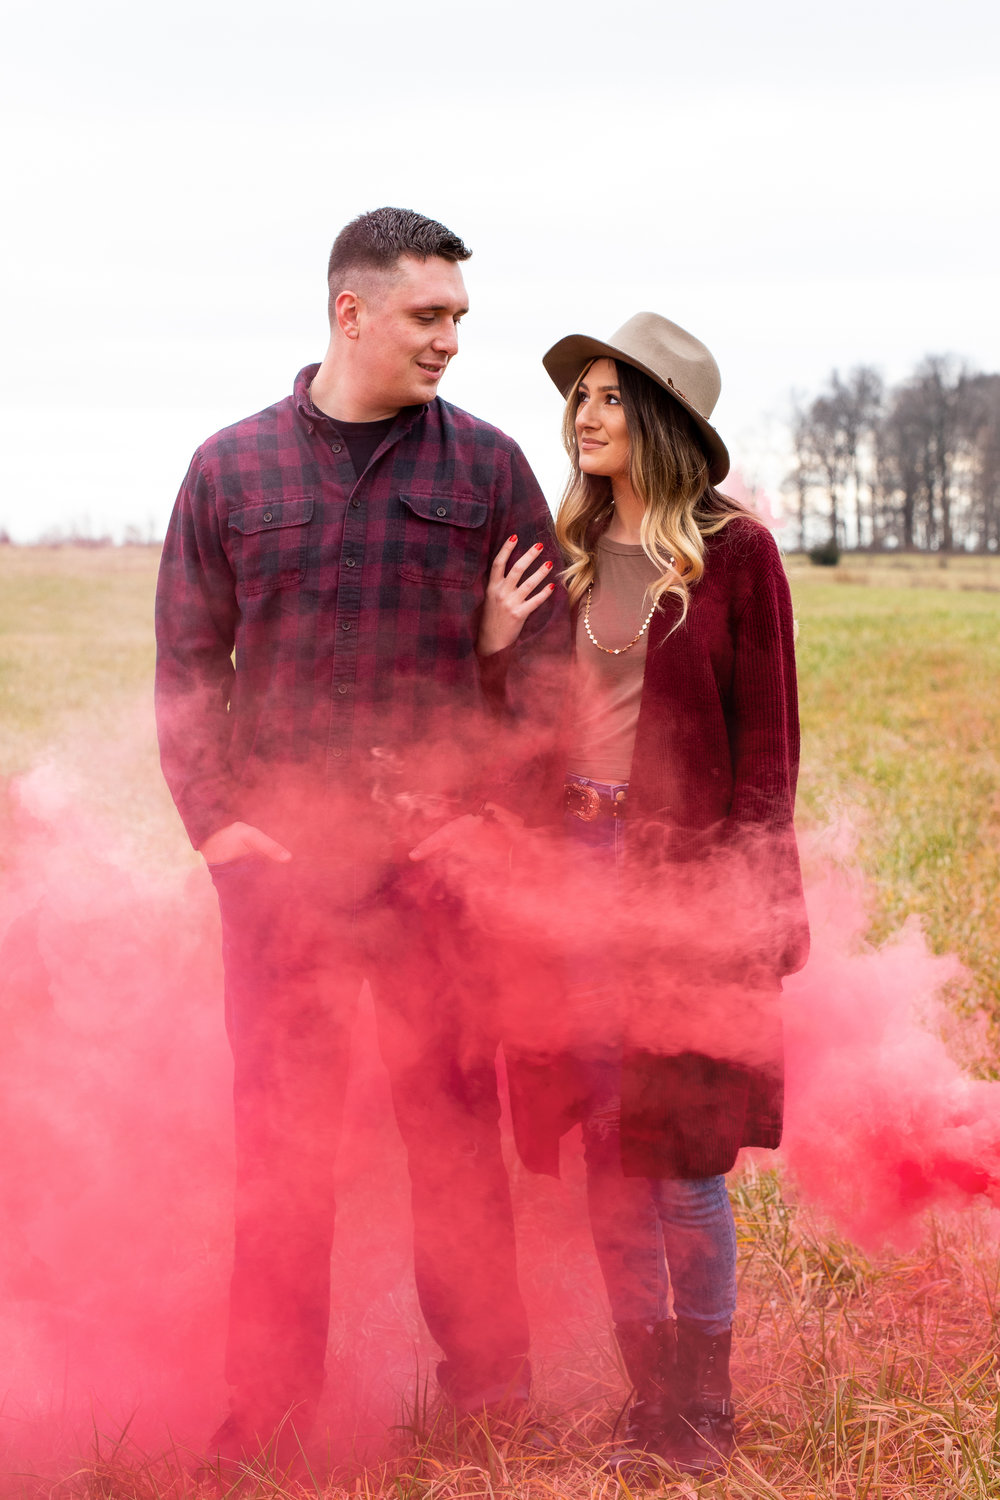 Smoke bomb fun in Spiceland, Indiana